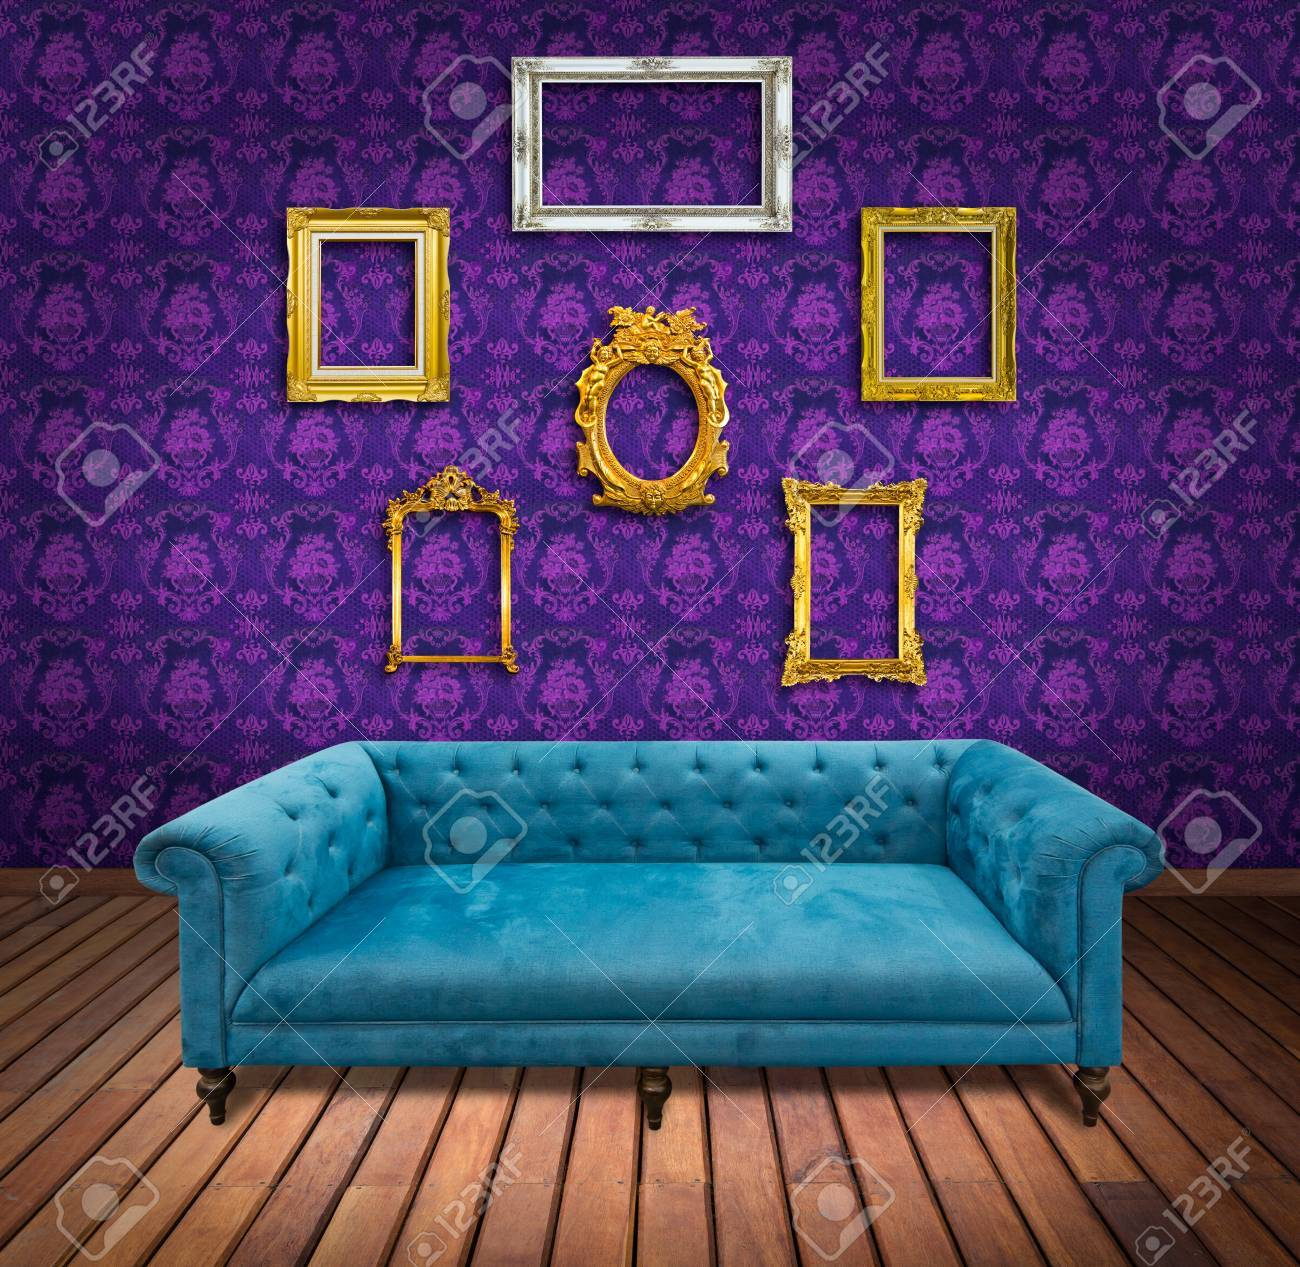 Sofa and frame in pink wallpaper room Stock Photo - 13104849